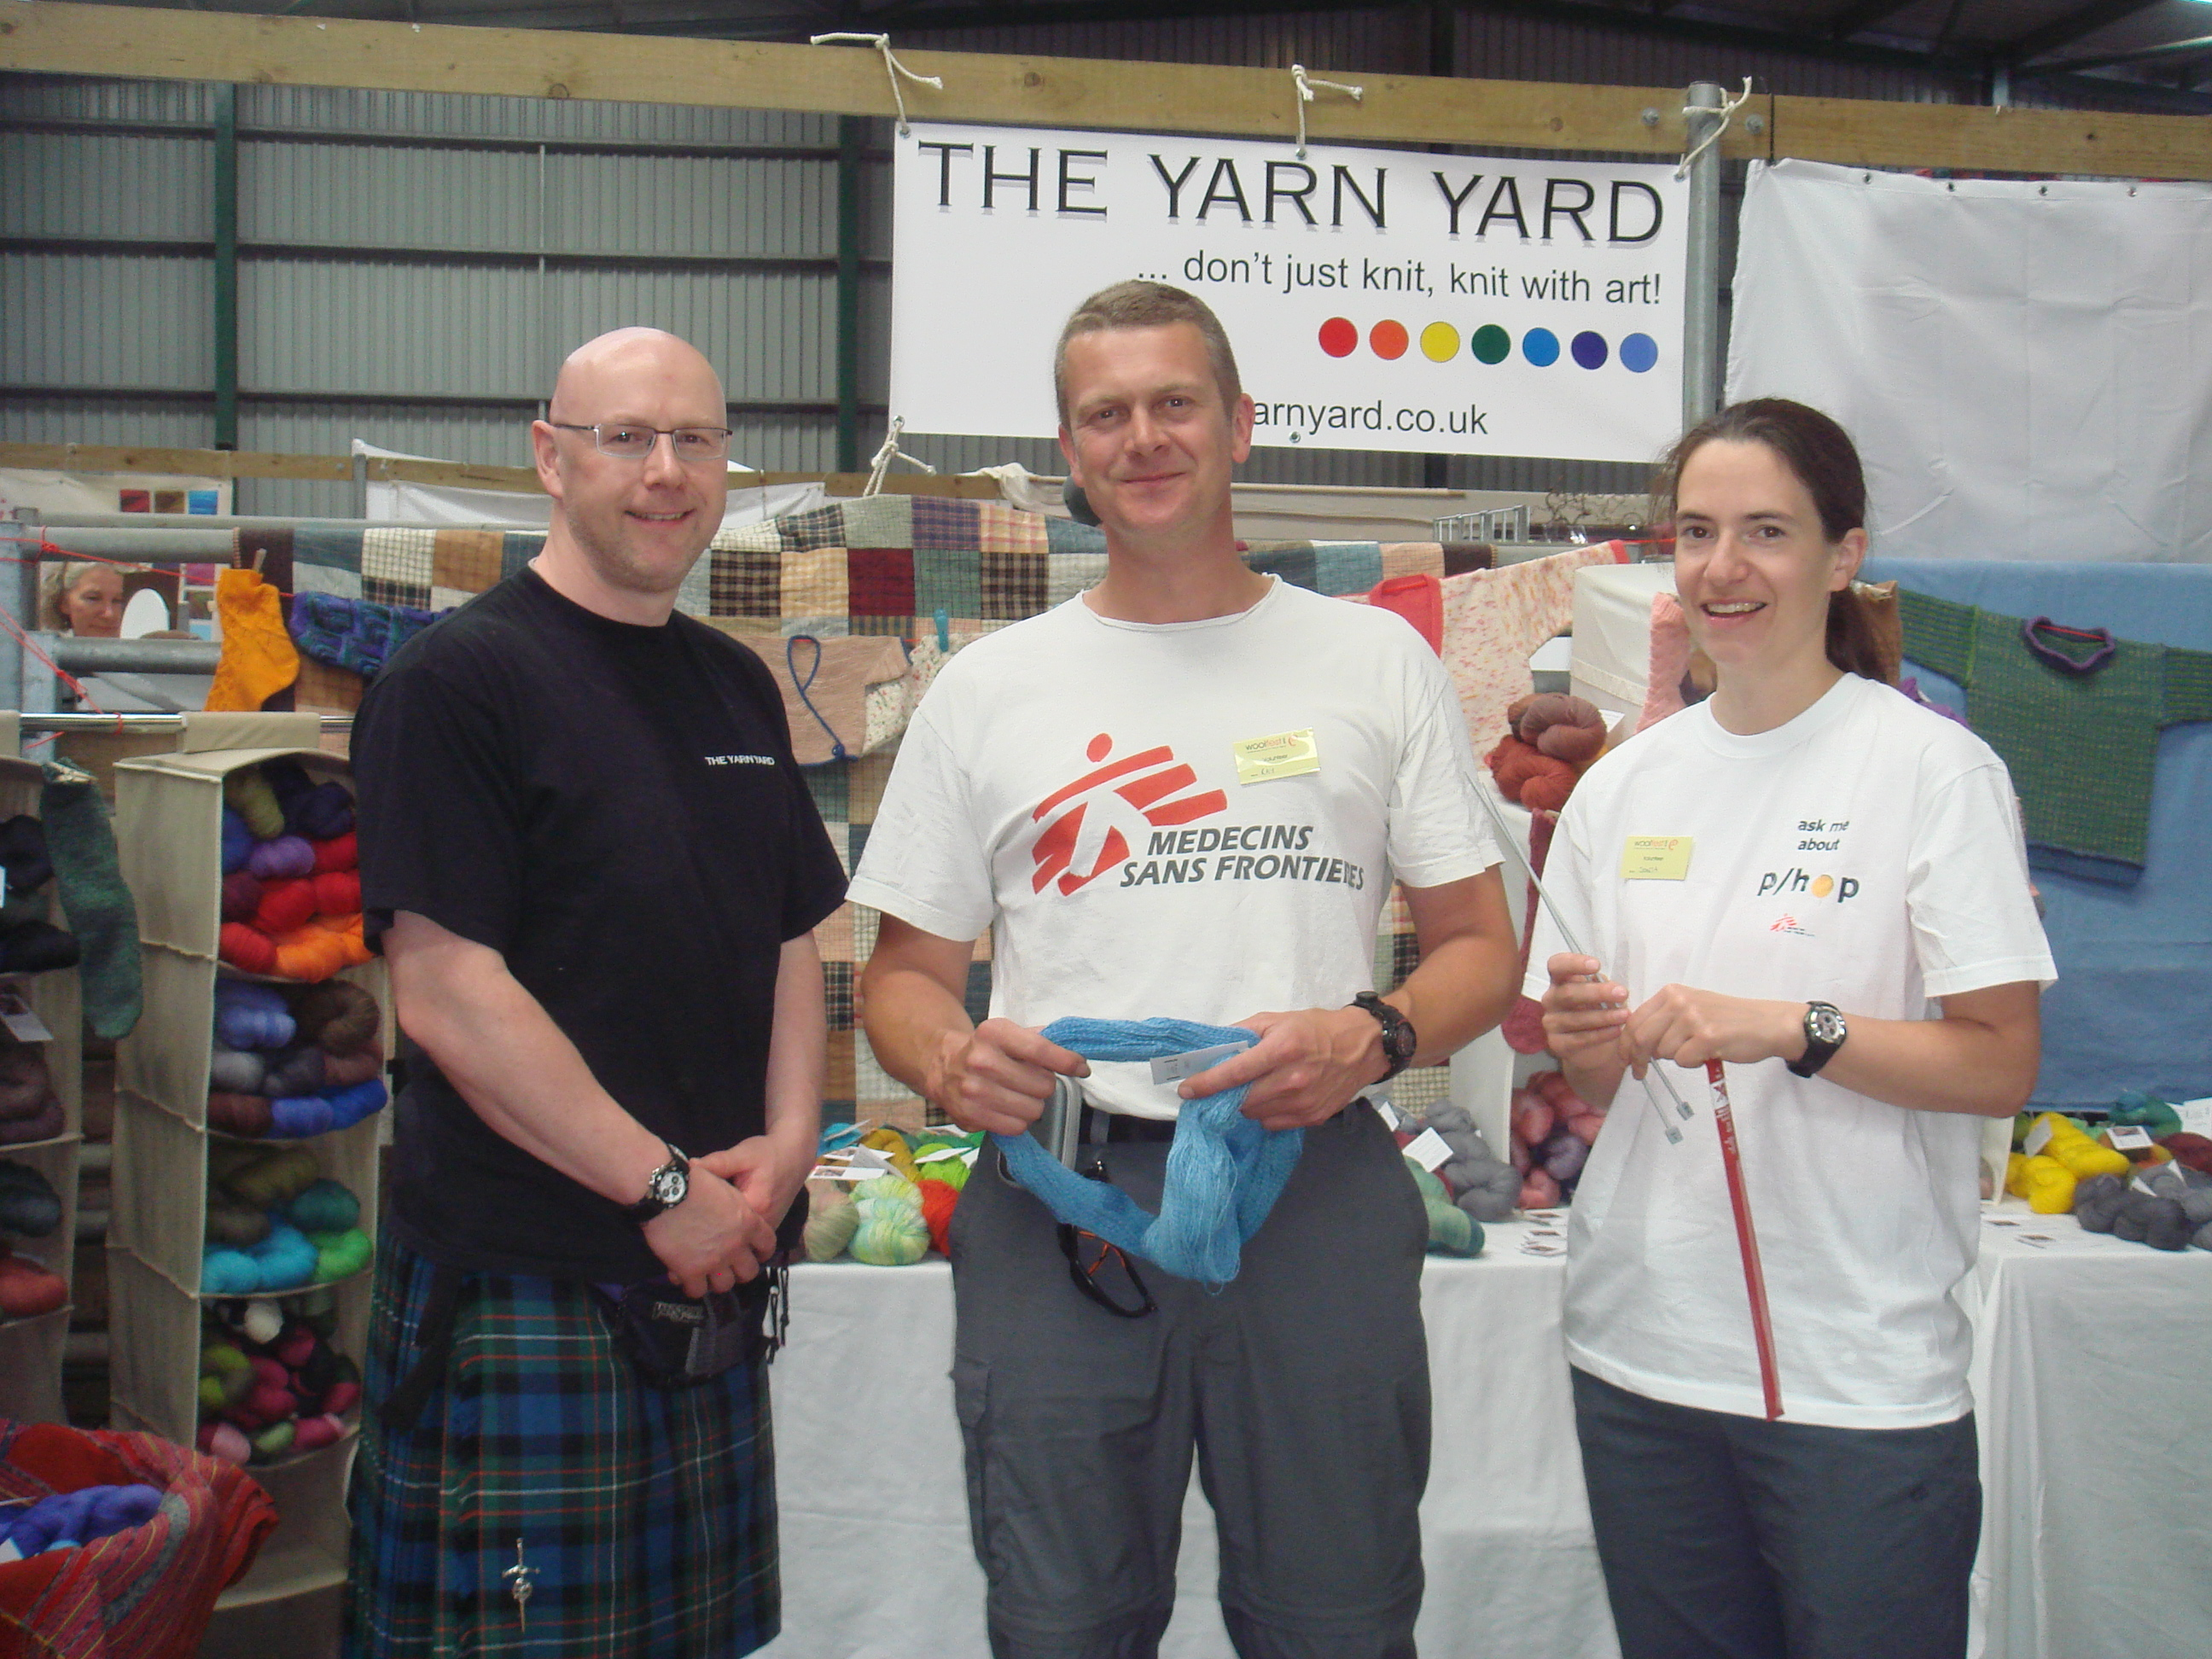 Gavin, Ray and Sonja at Yarn Yard Stall